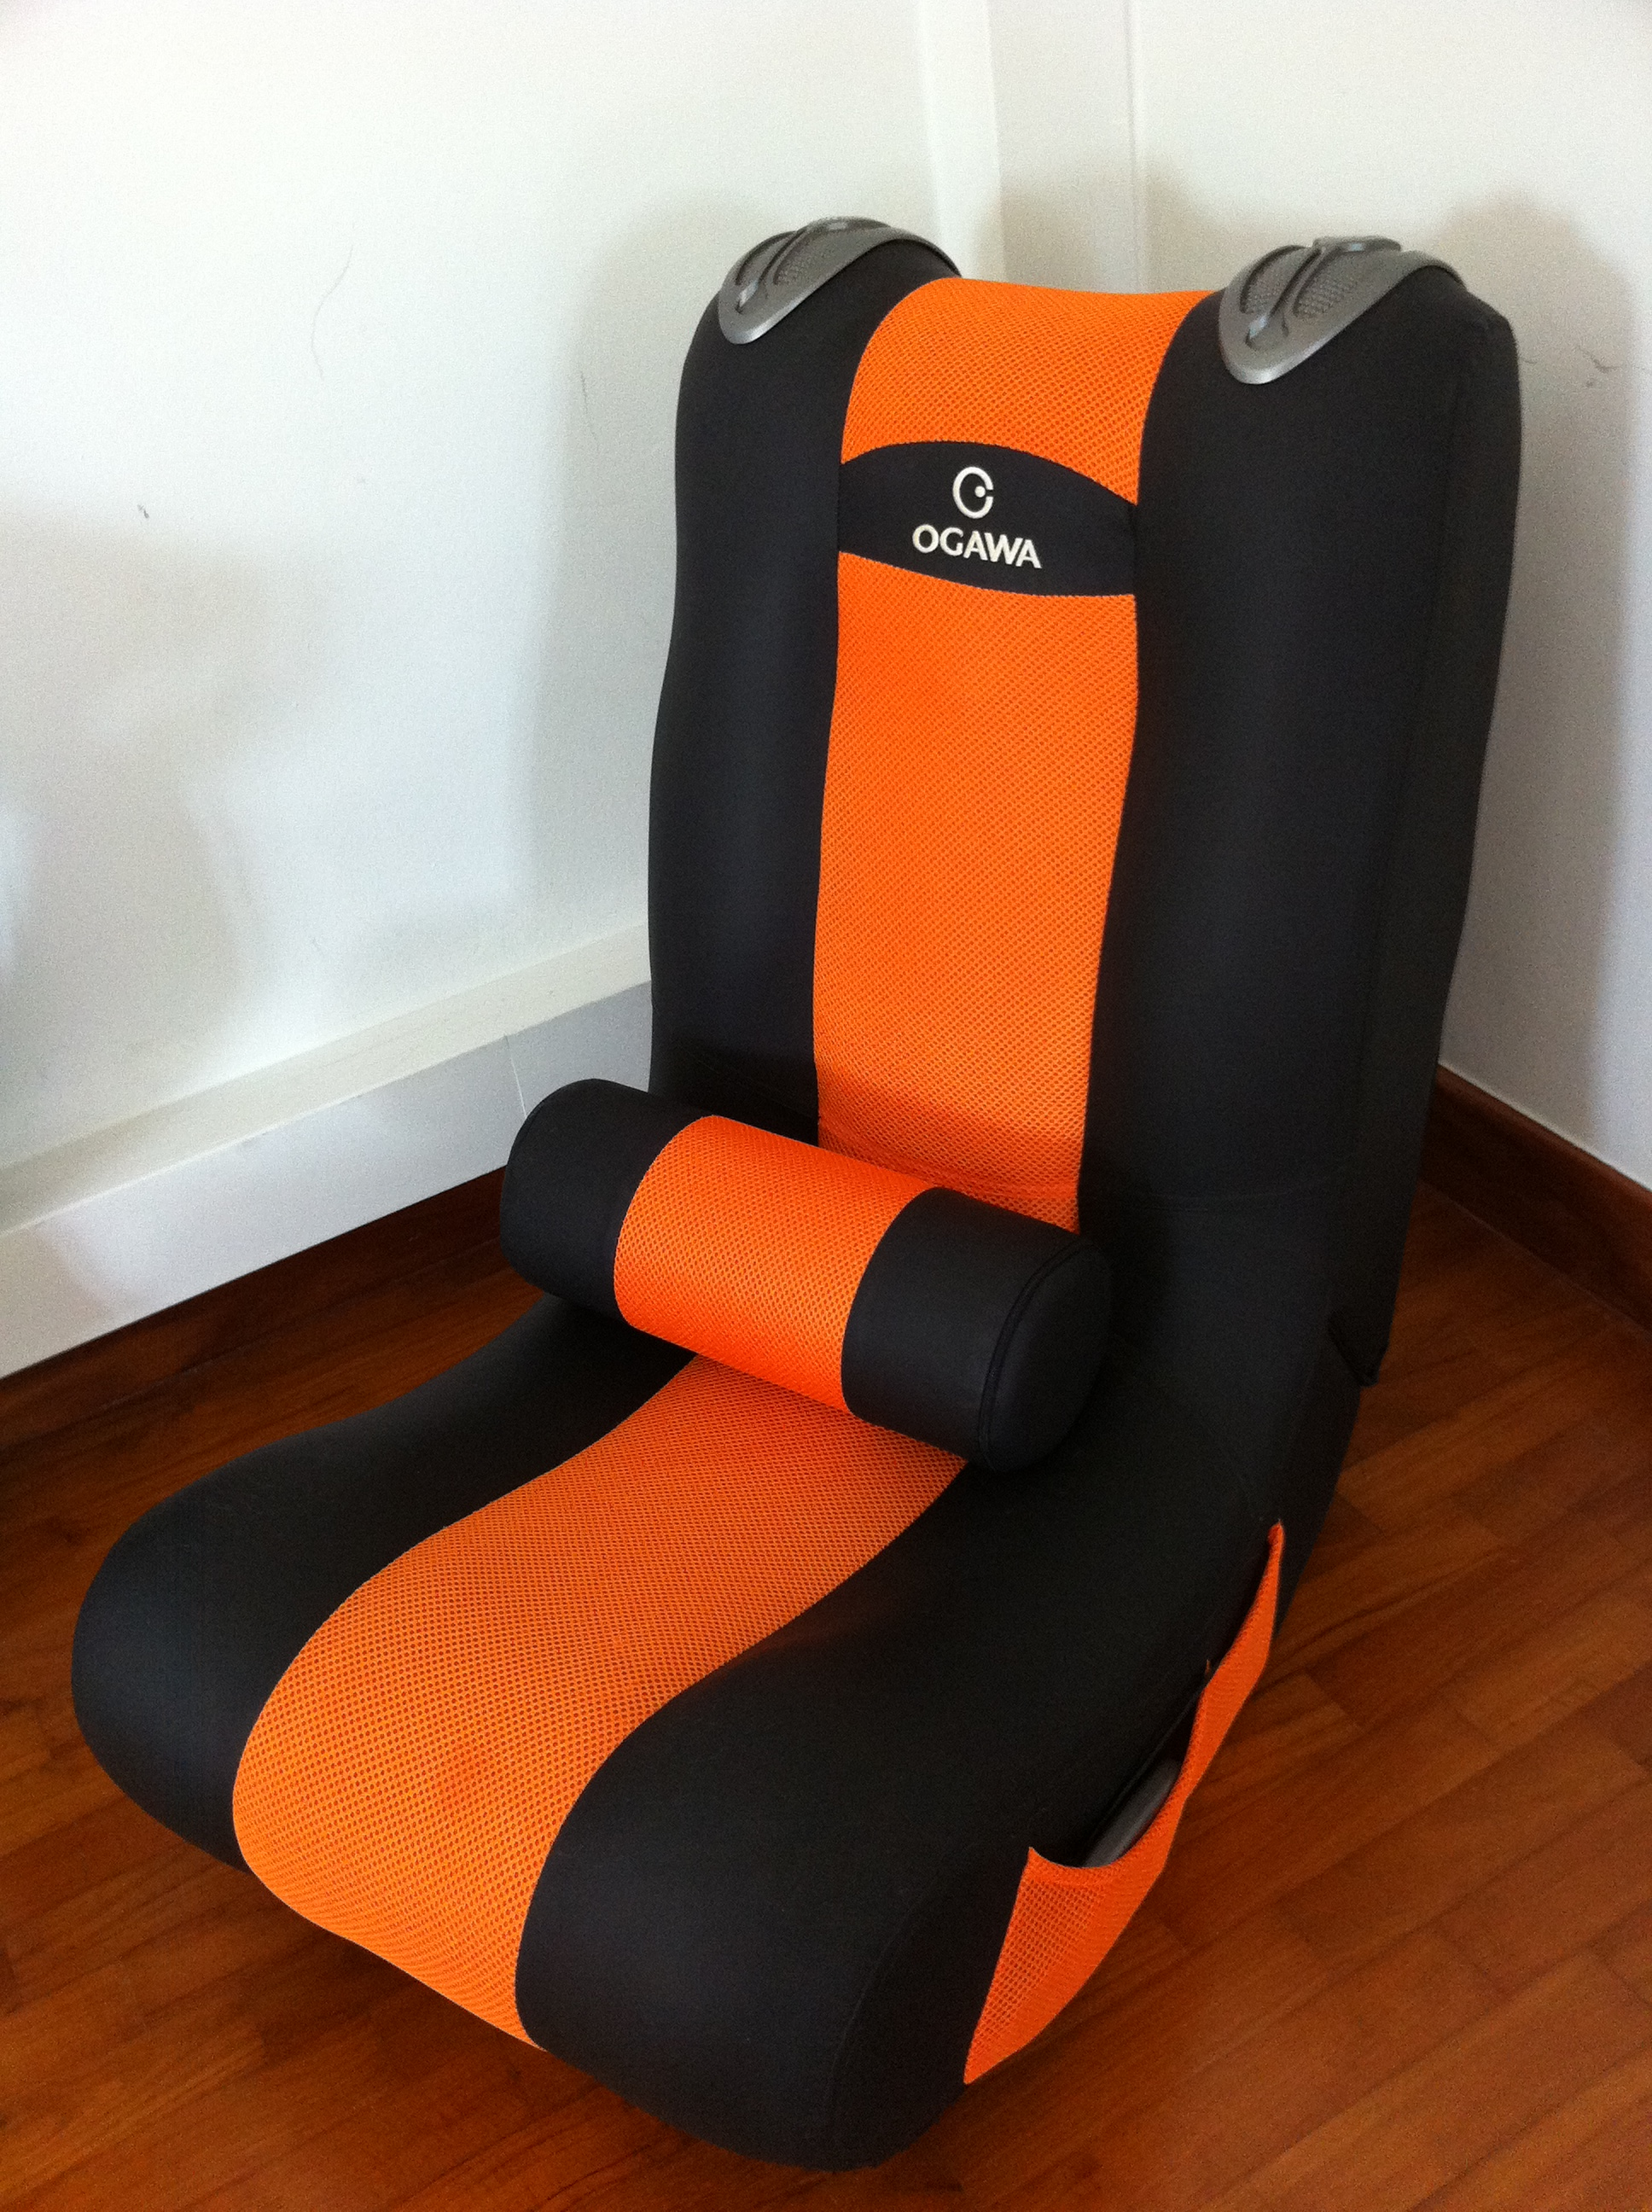 good cheap gaming chairs extra wide lawn items for sale ogawa chair with massager